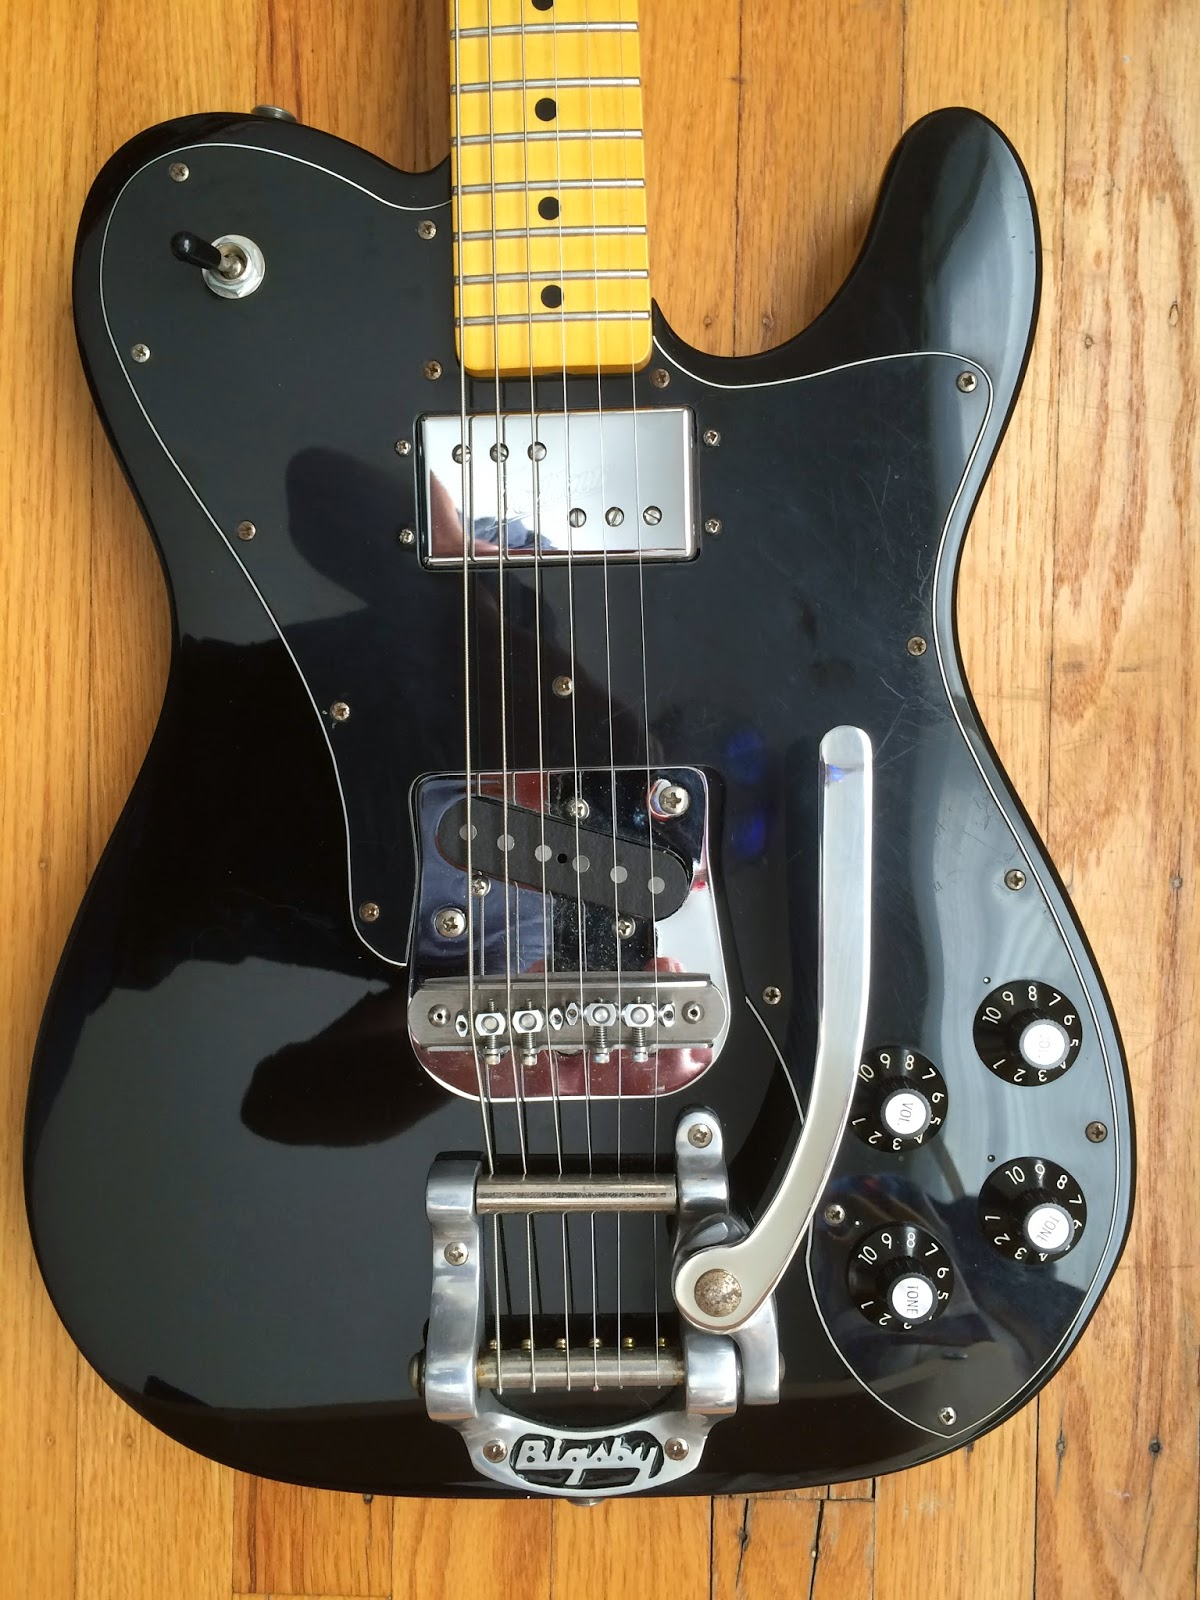 hight resolution of it s a classic combination a humbucker in the neck and a single coil in the bridge but it can be a real challenge to keep that single coil from sounding